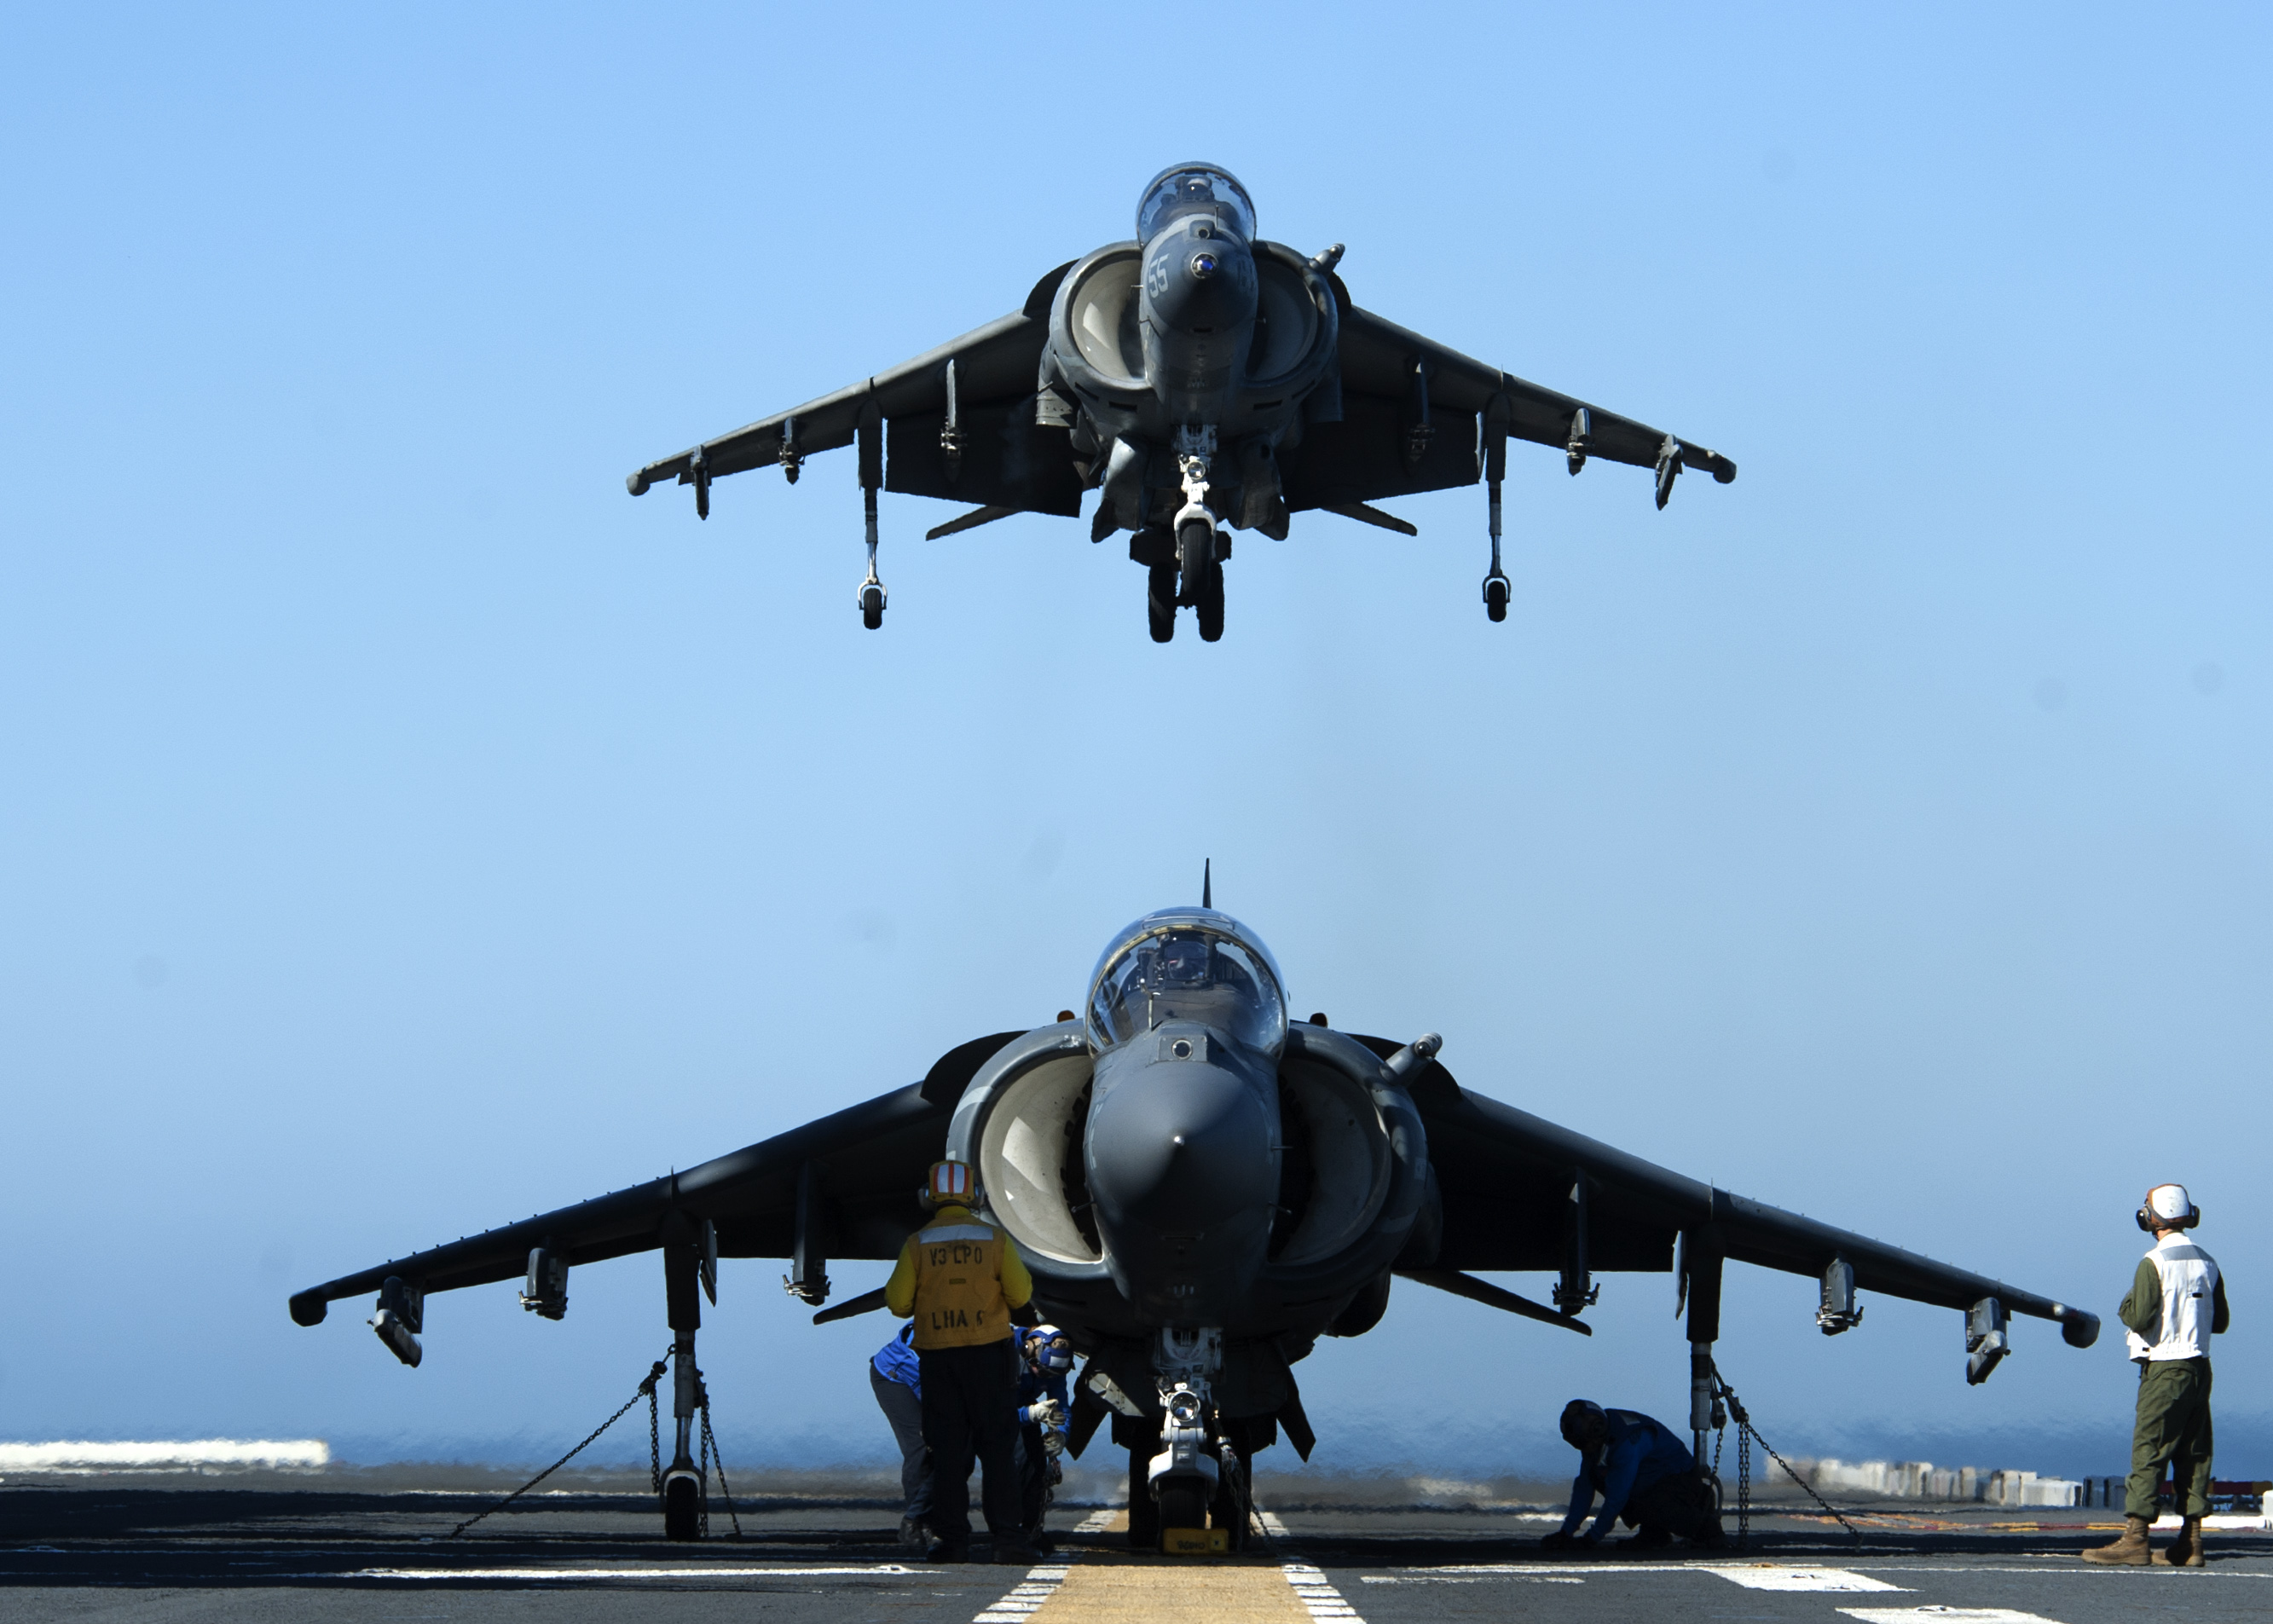 An AV-8B Harrier assigned to Marine Attack Squadron (VMA) 311 prepares to land on the flight deck of the amphibious assault ship USS America (LHA-6) on Feb. 25, 2015. US Navy Photo